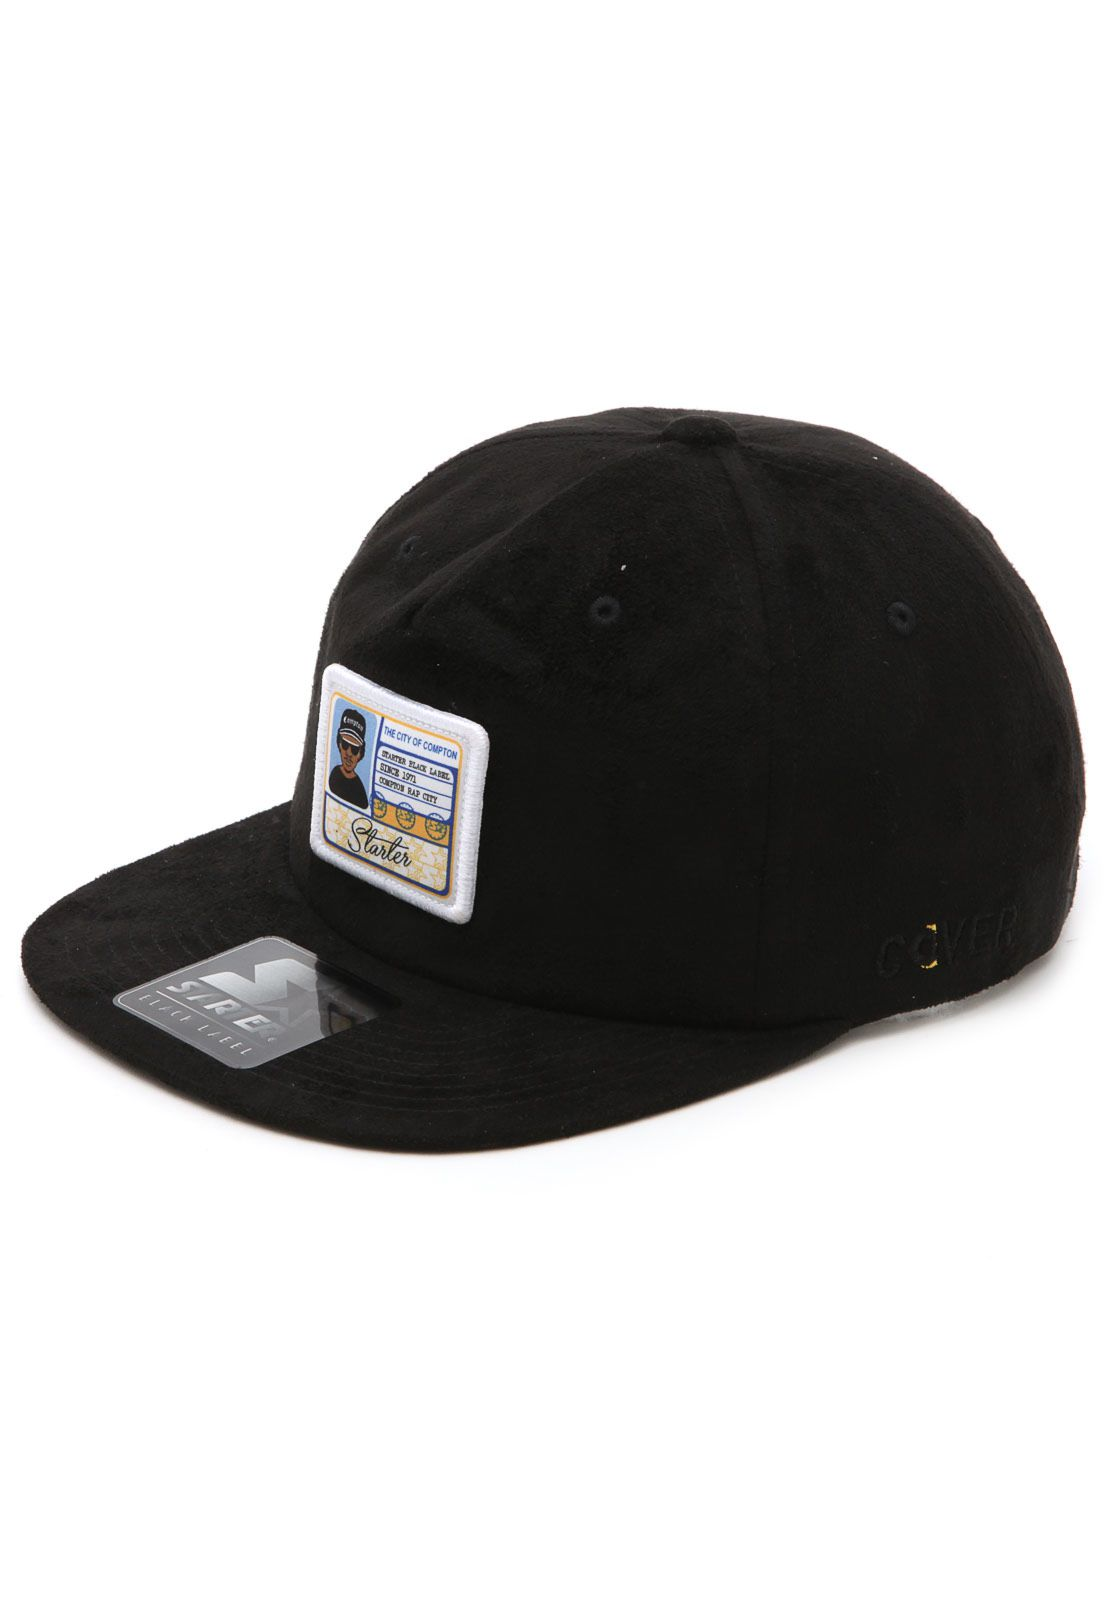 Boné Starter The City Of Compton Snapback Preto